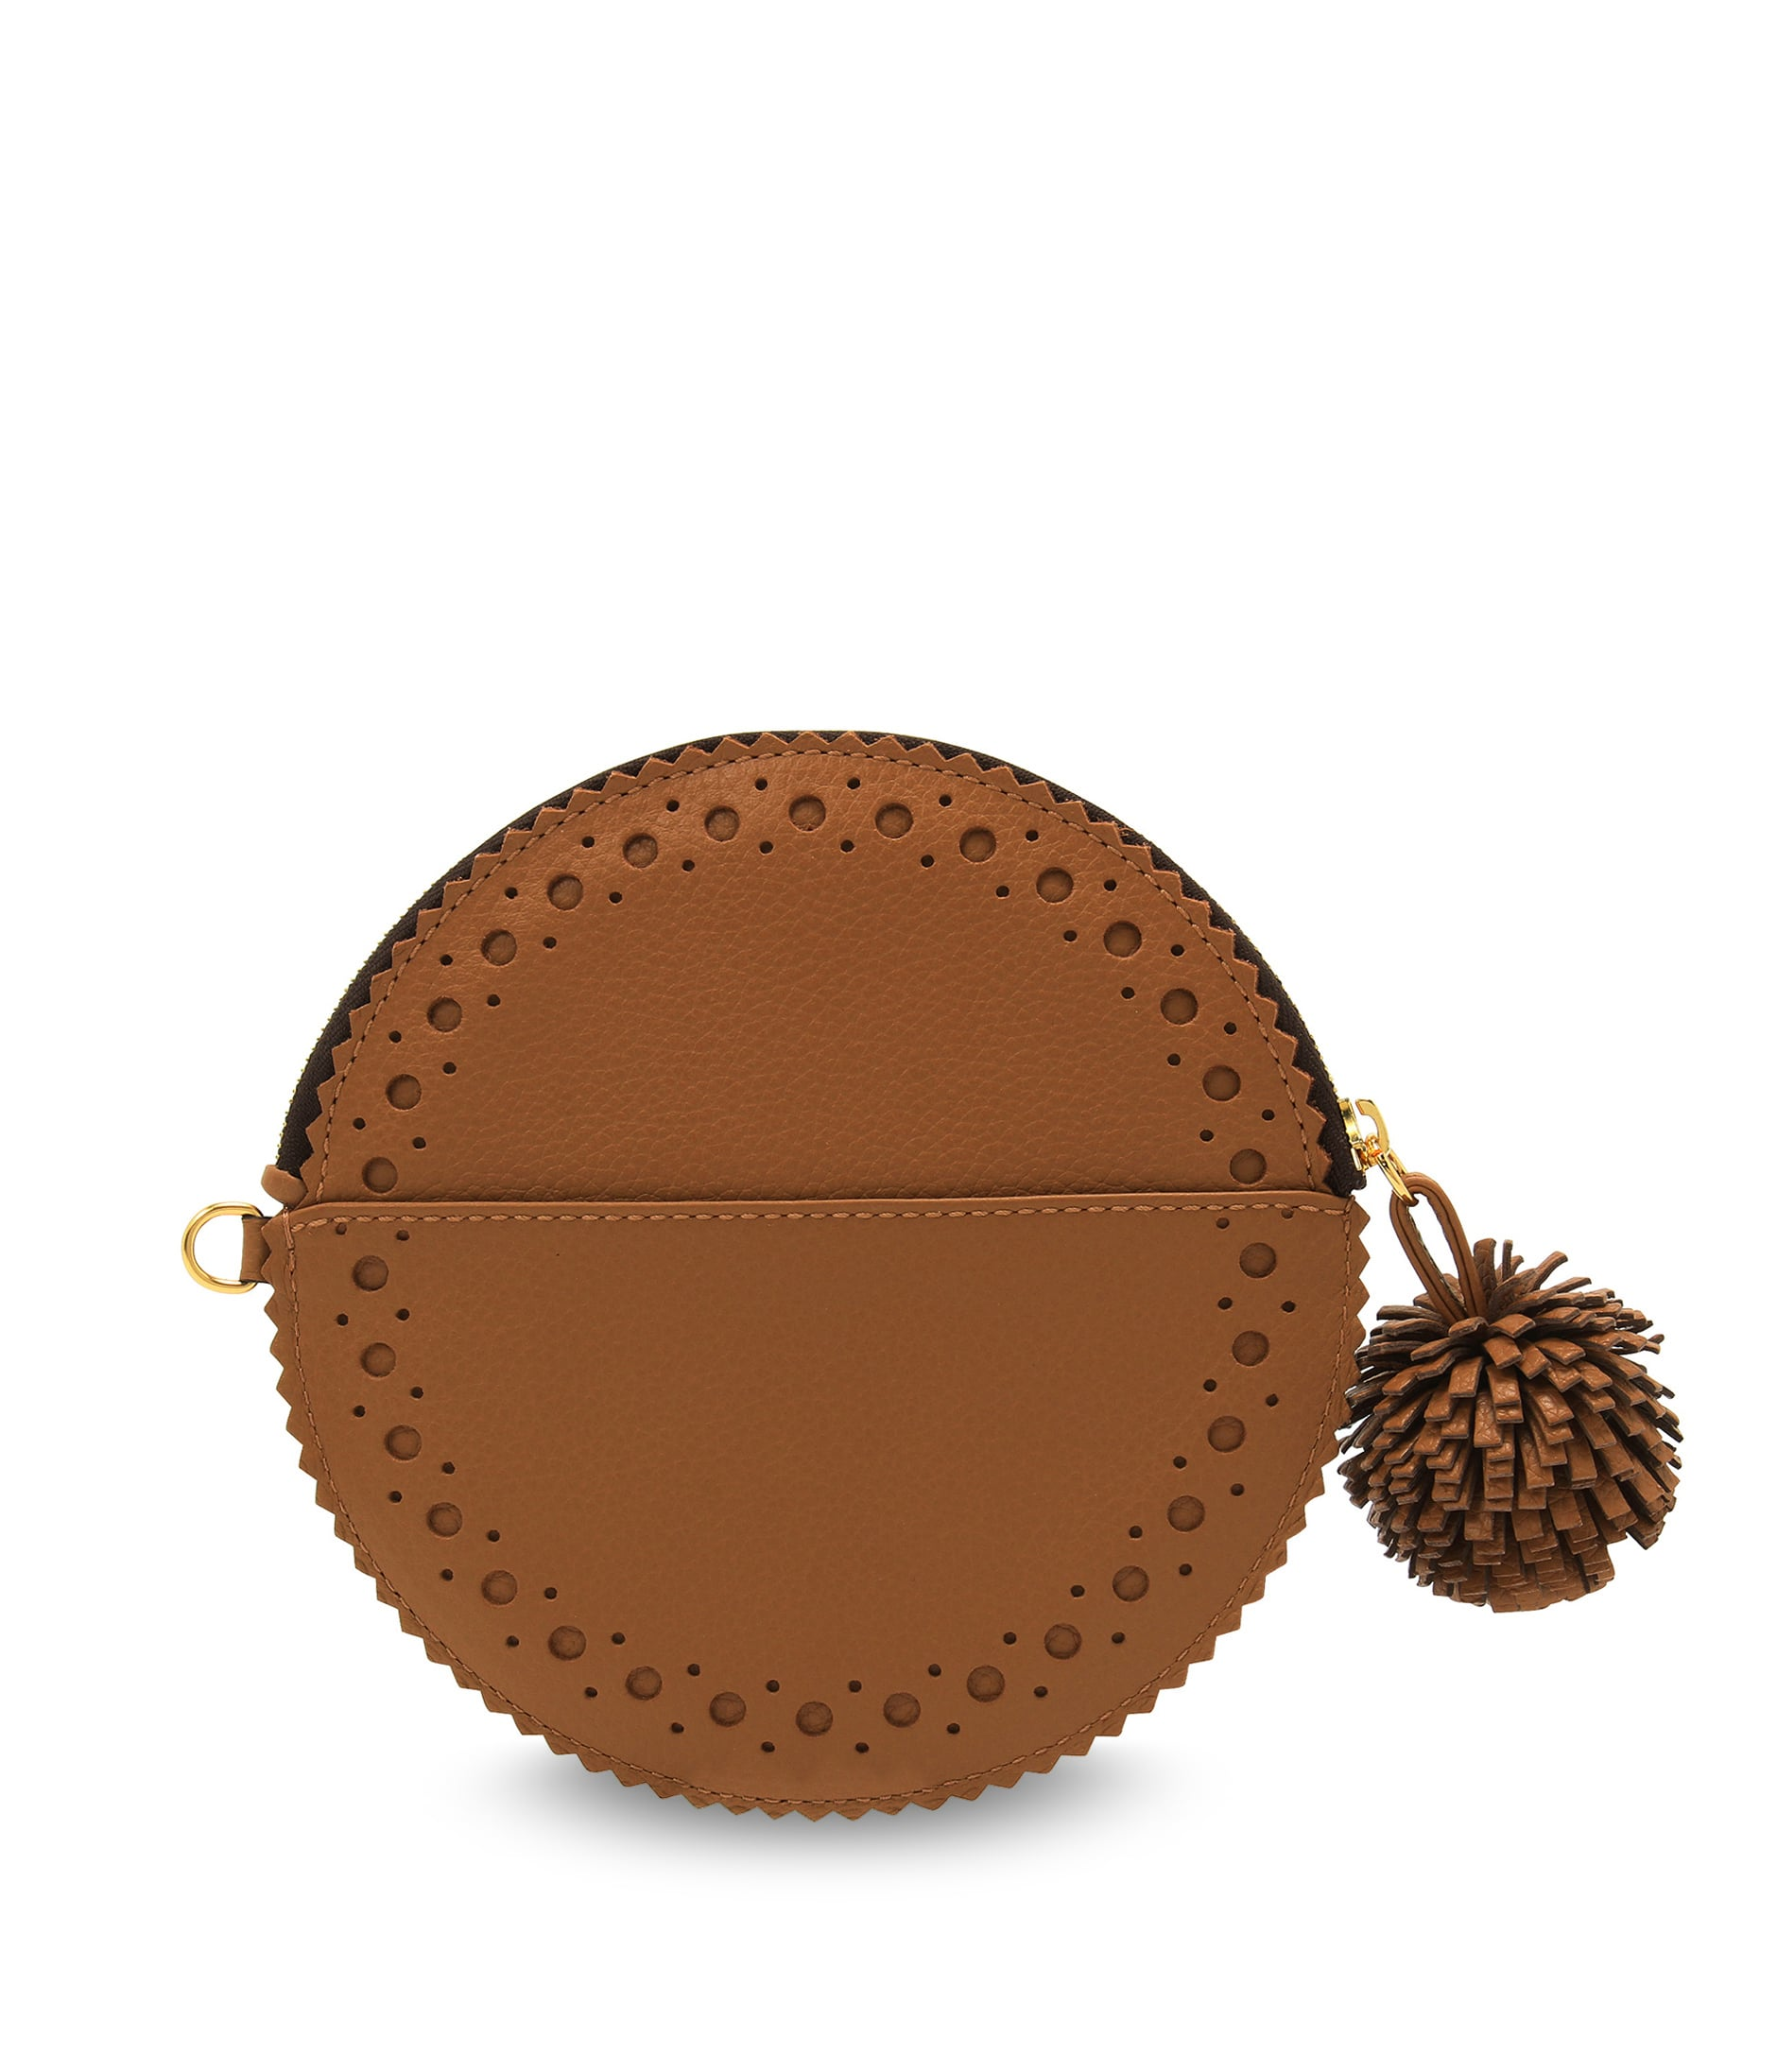 CIRCLE PURSE WITH POMPOM 詳細画像 MOROCCAN BROWN 2